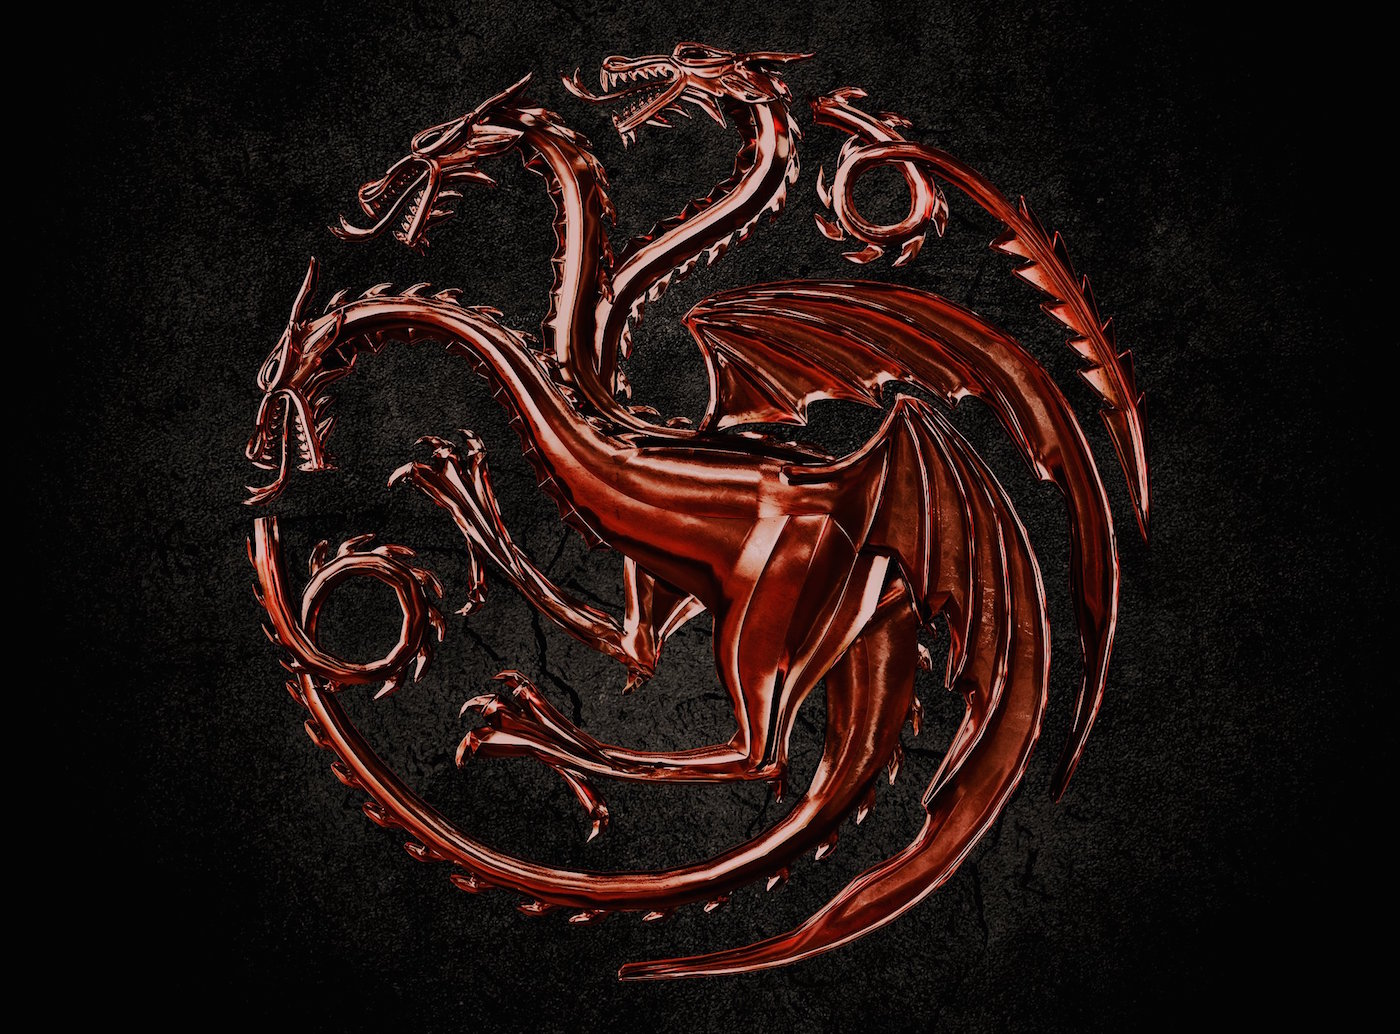 It's a Sunny Day for Targaryens in the First Images From HBO's House of the Dragon